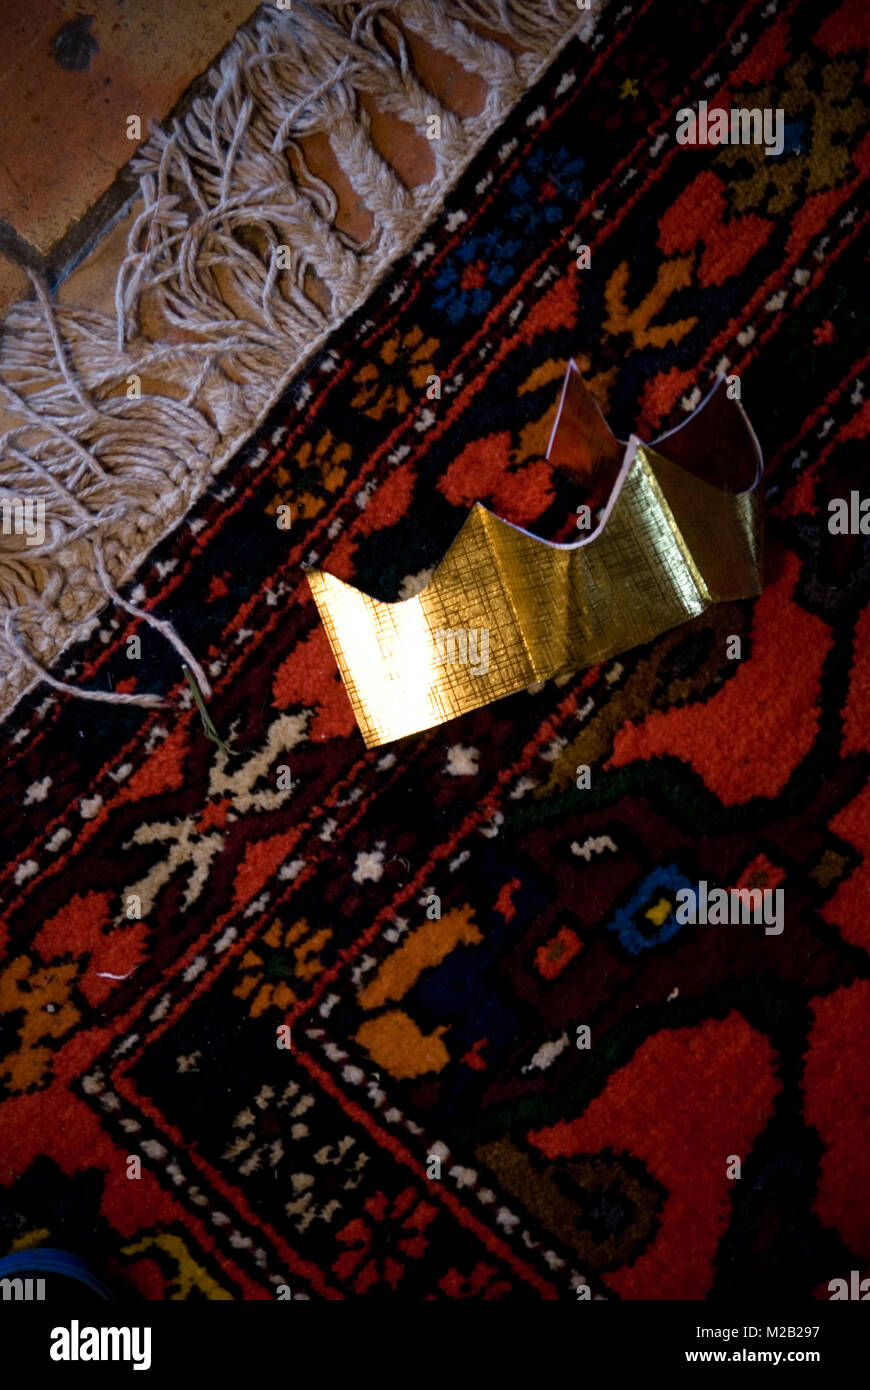 close up of paper gold paper crown from christmas cracker lying on moroccan rug on floor - Stock Image